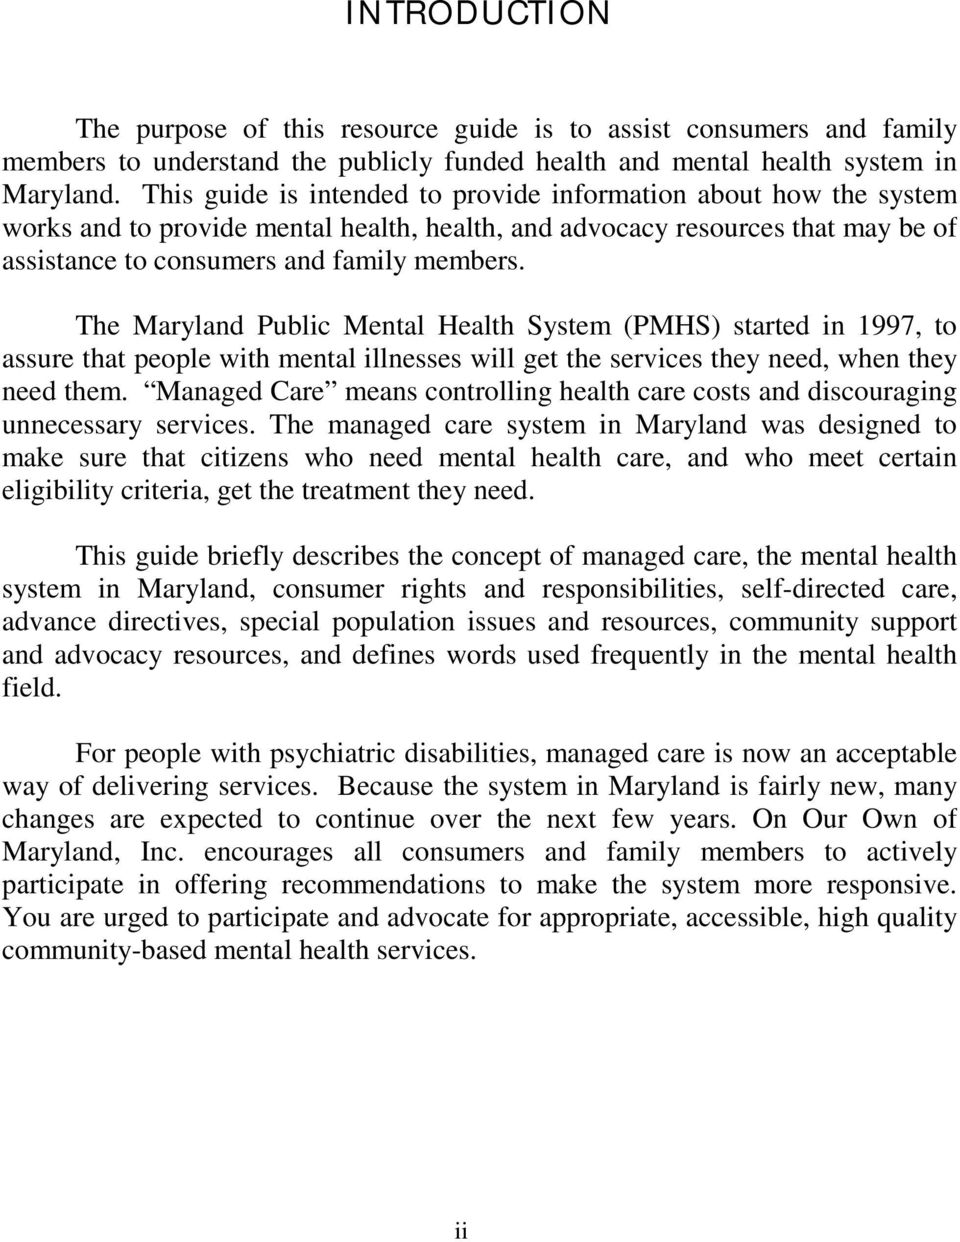 The Maryland Public Mental Health System (PMHS) started in 1997, to assure that people with mental illnesses will get the services they need, when they need them.